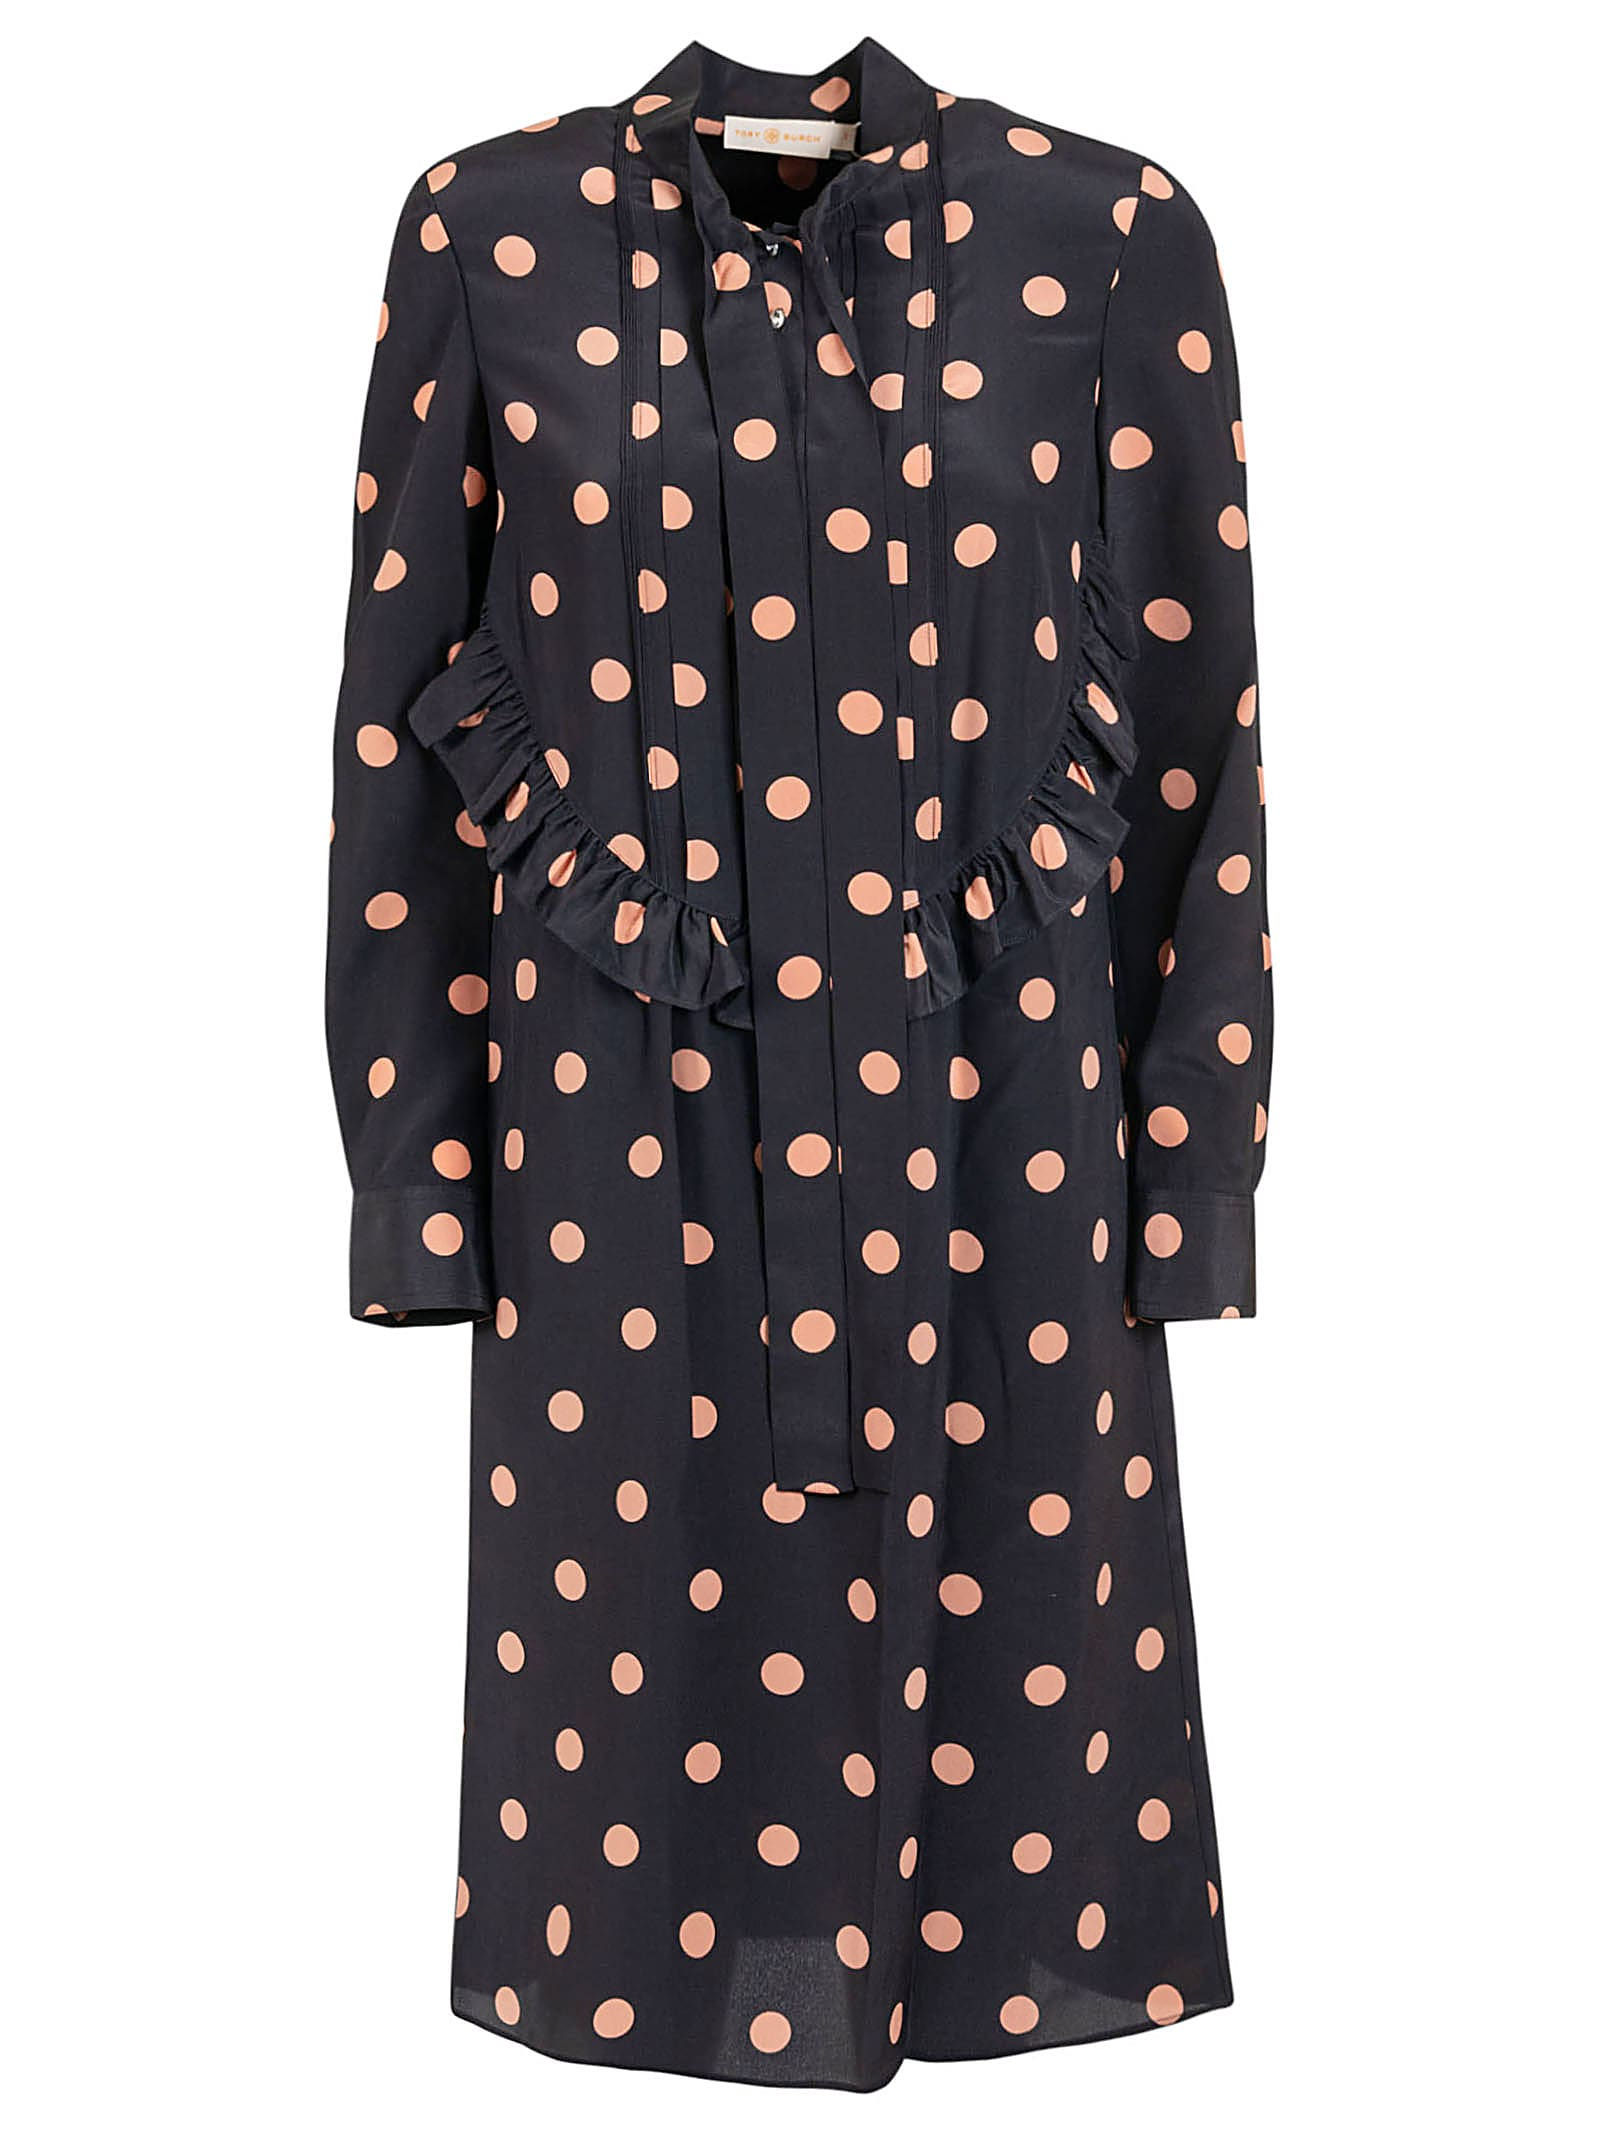 Buy Tory Burch Printed Ruffled Bow Dress online, shop Tory Burch with free shipping